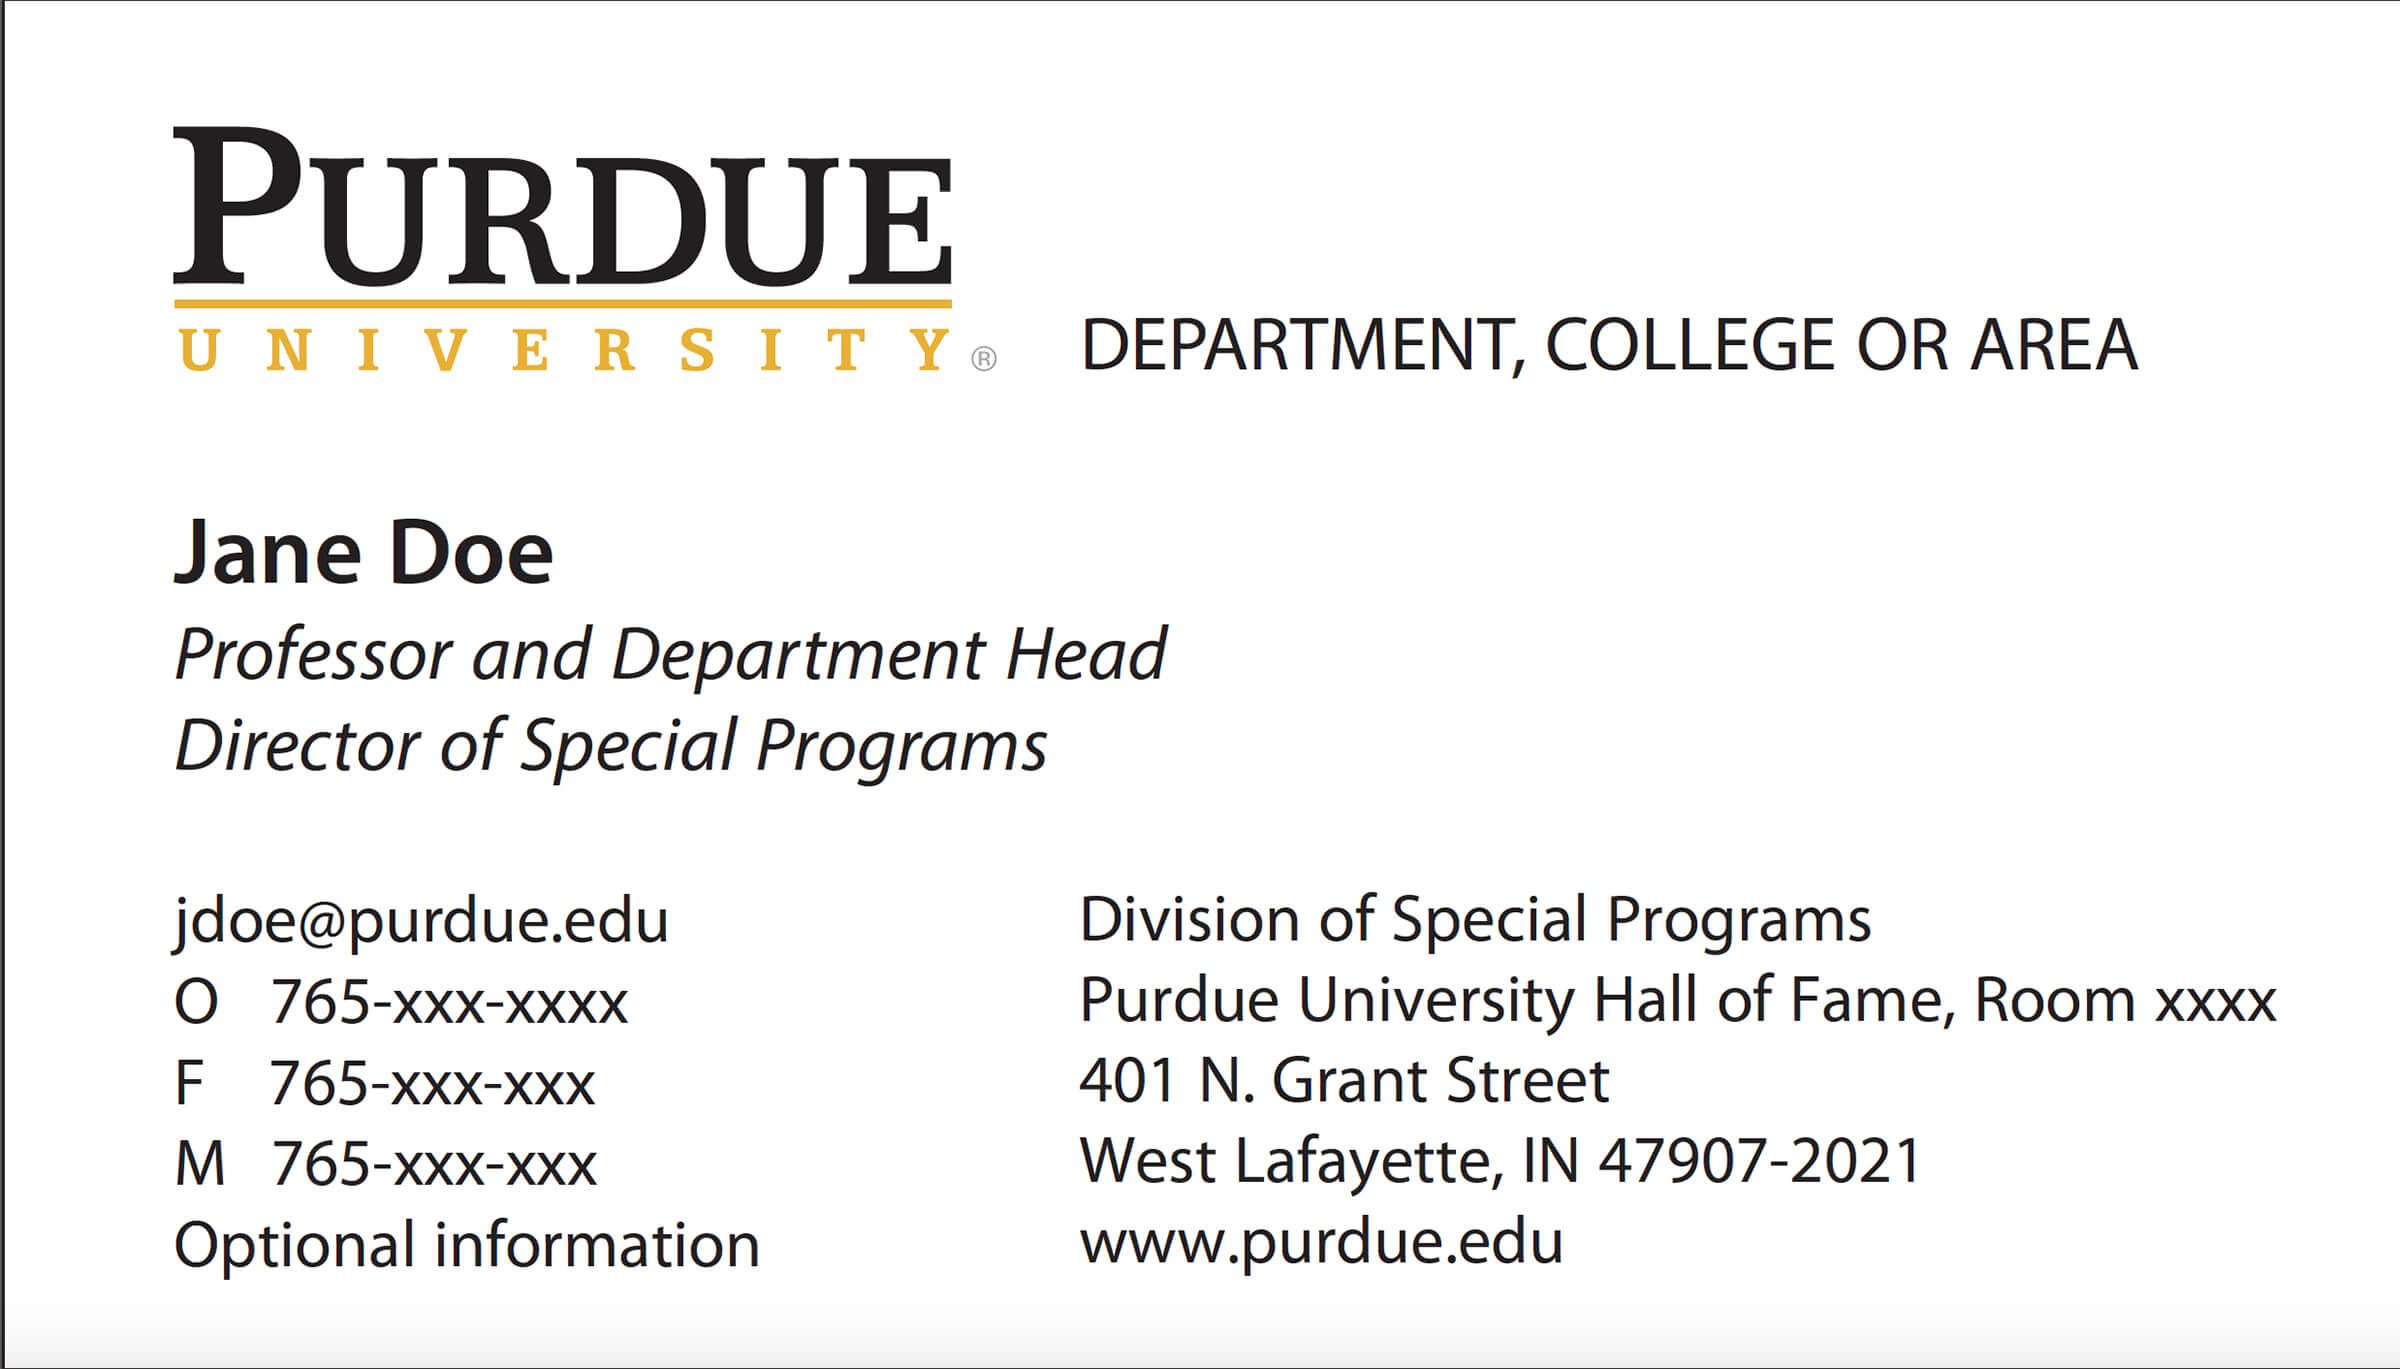 New Business Card Template Now Online - Purdue University News Inside Student Business Card Template